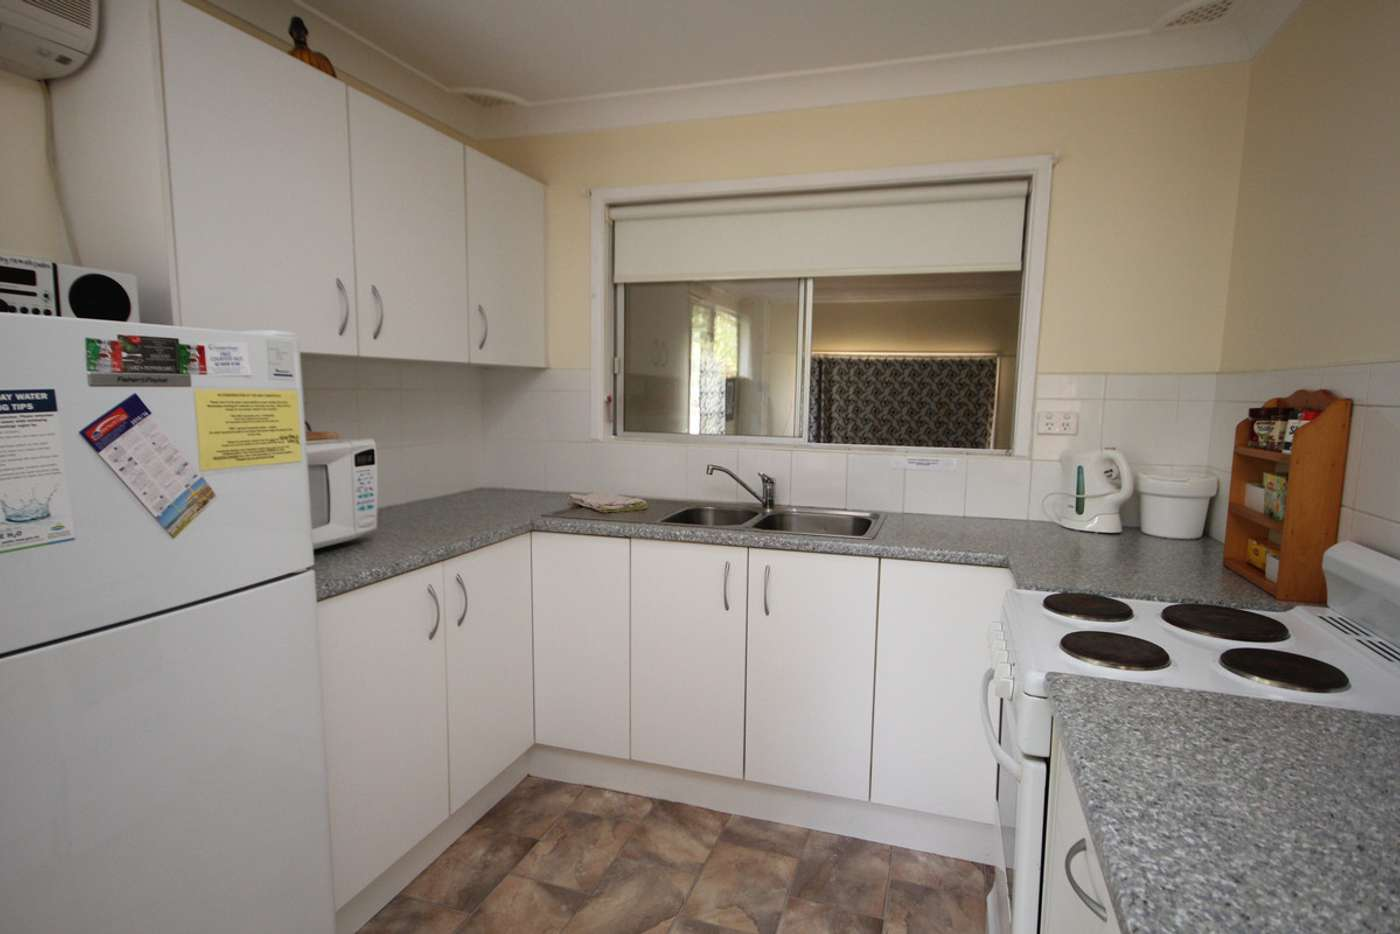 Sixth view of Homely house listing, 9 David Campbell Street, North Haven NSW 2443